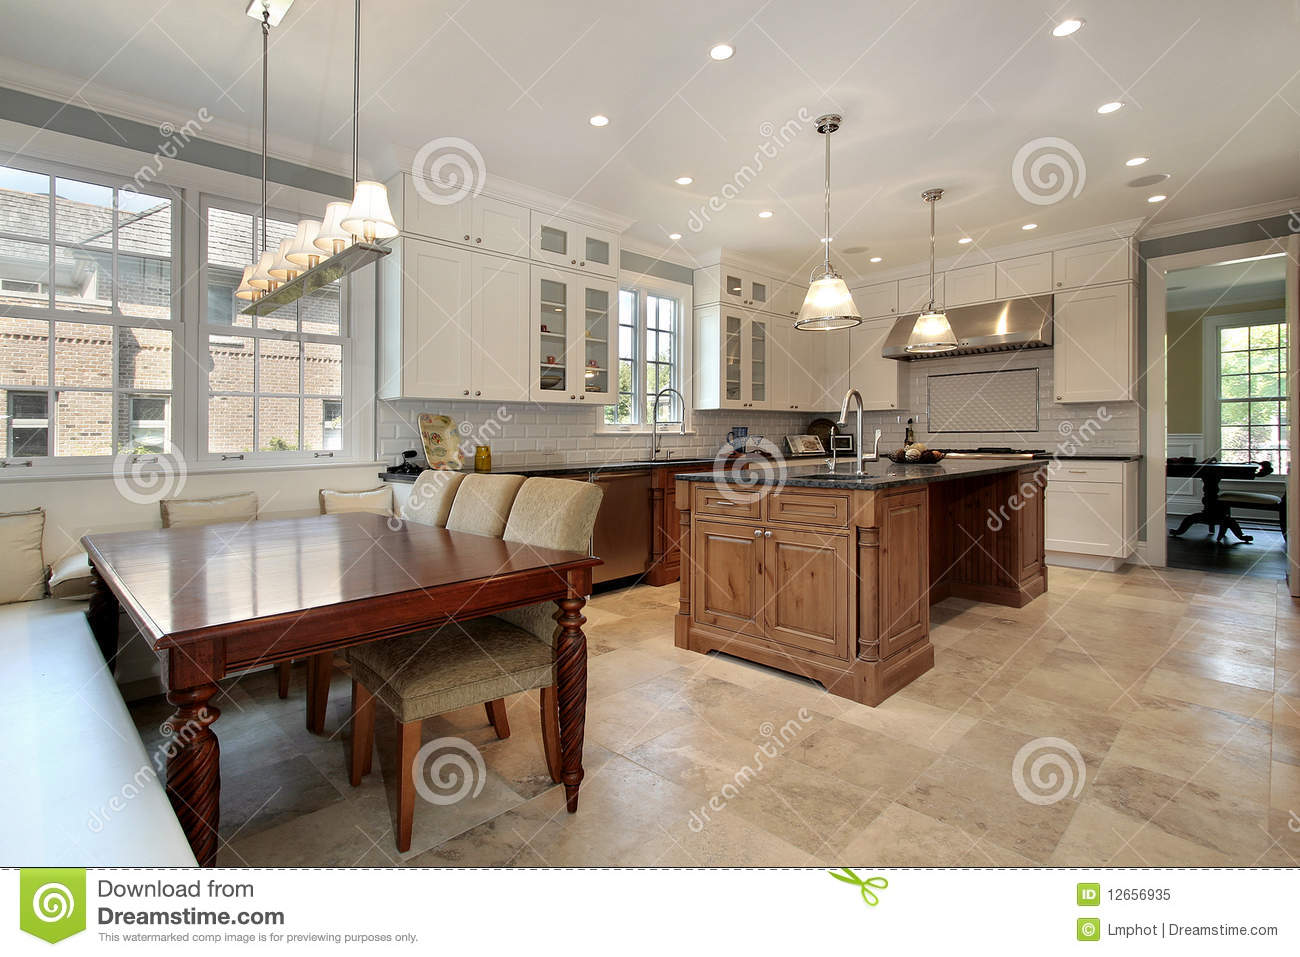 kitchen cabinet plans target chairs with eating area and bench stock image - ...